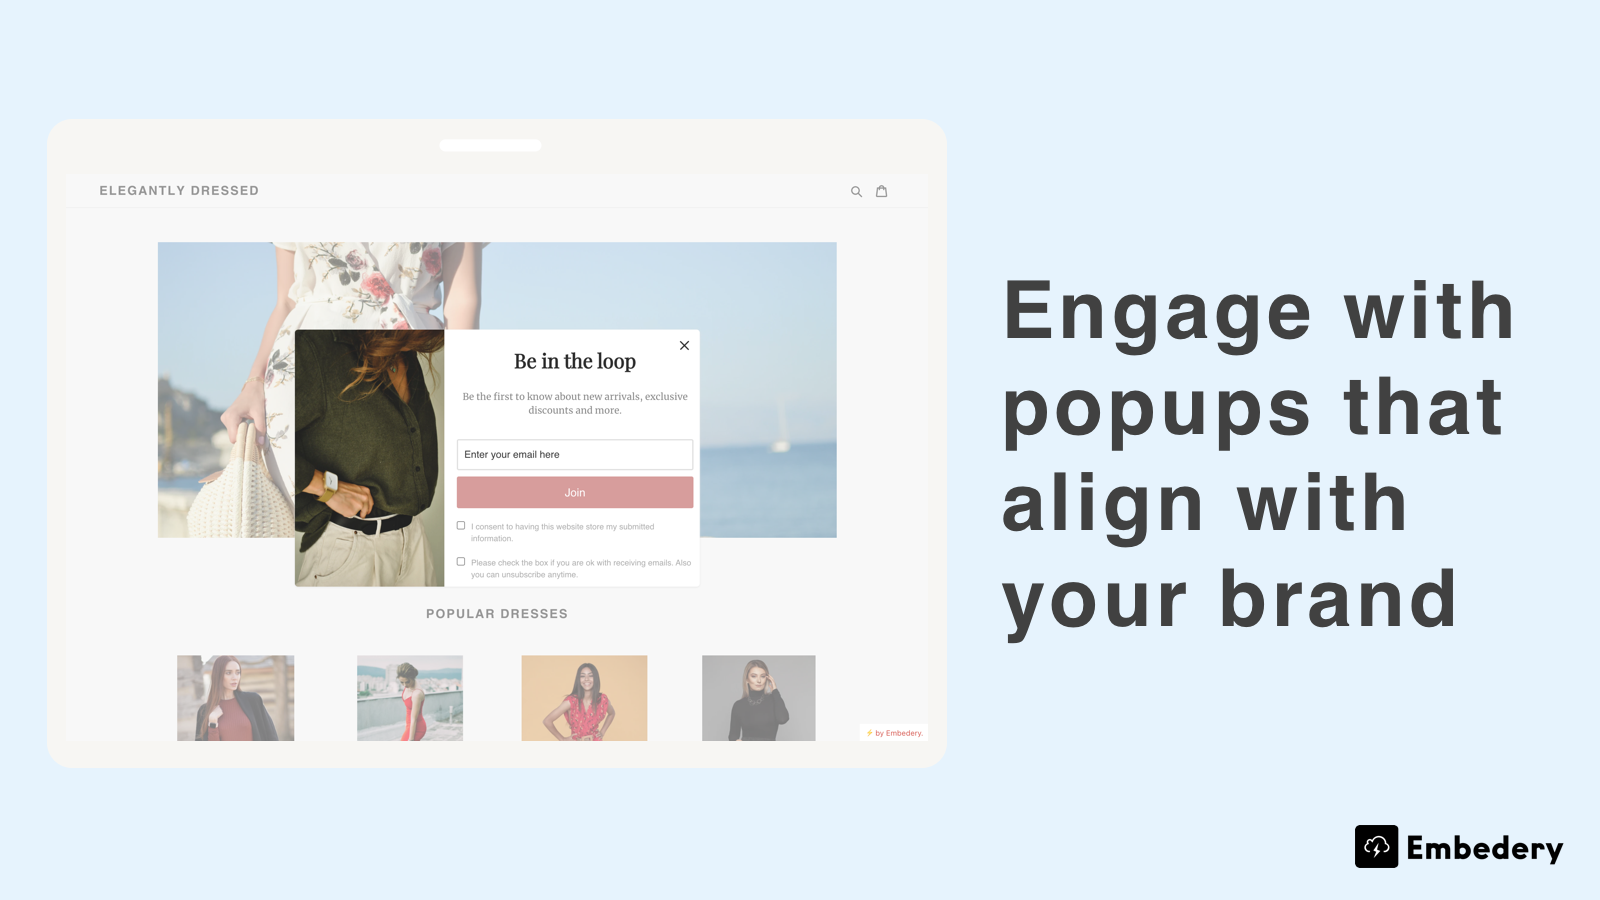 Popups that align with your brand